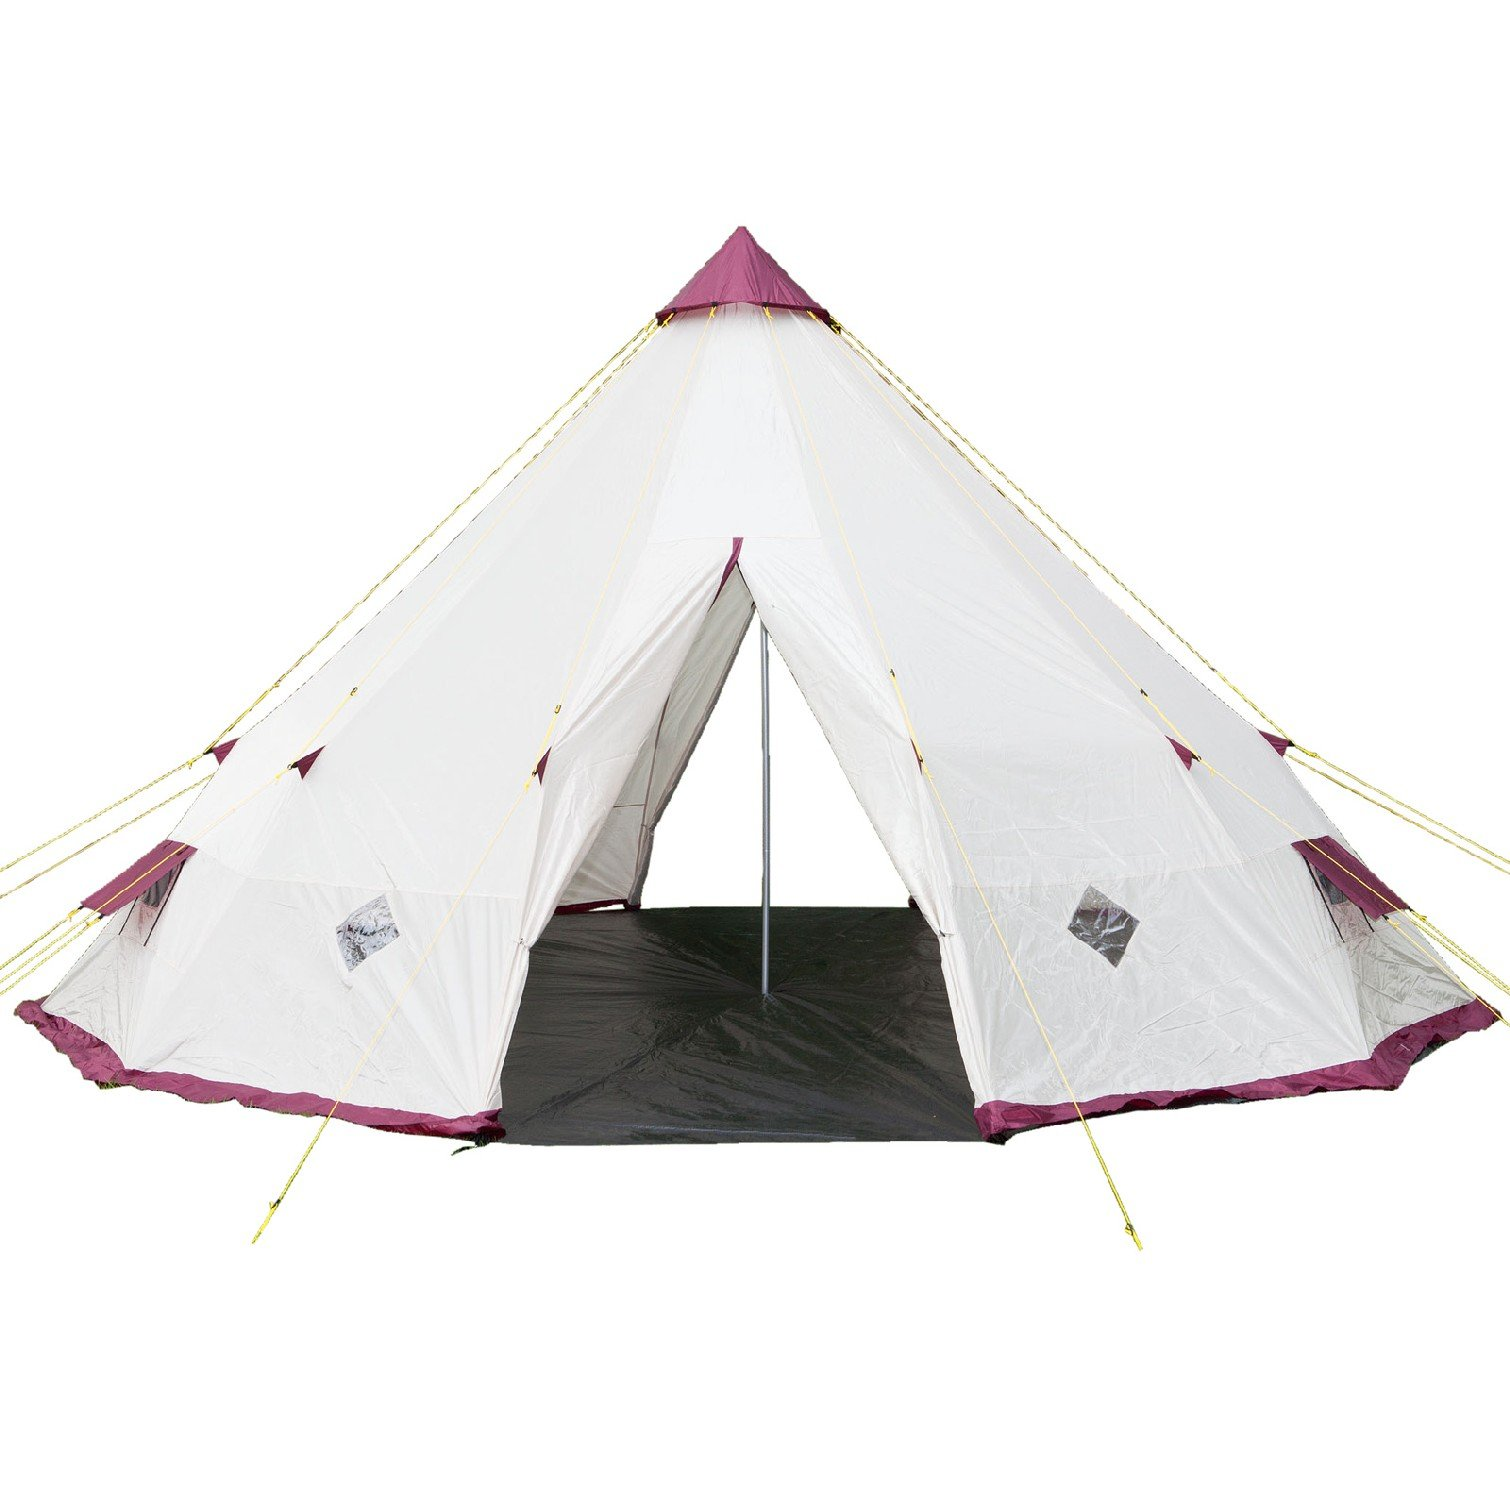 Large Skandika TeePee Tent Tipi 12 Person White C&ing Picnic Party Festival  sc 1 st  eBay & Large Skandika TeePee Tent Tipi 12 Person White Camping Picnic ...